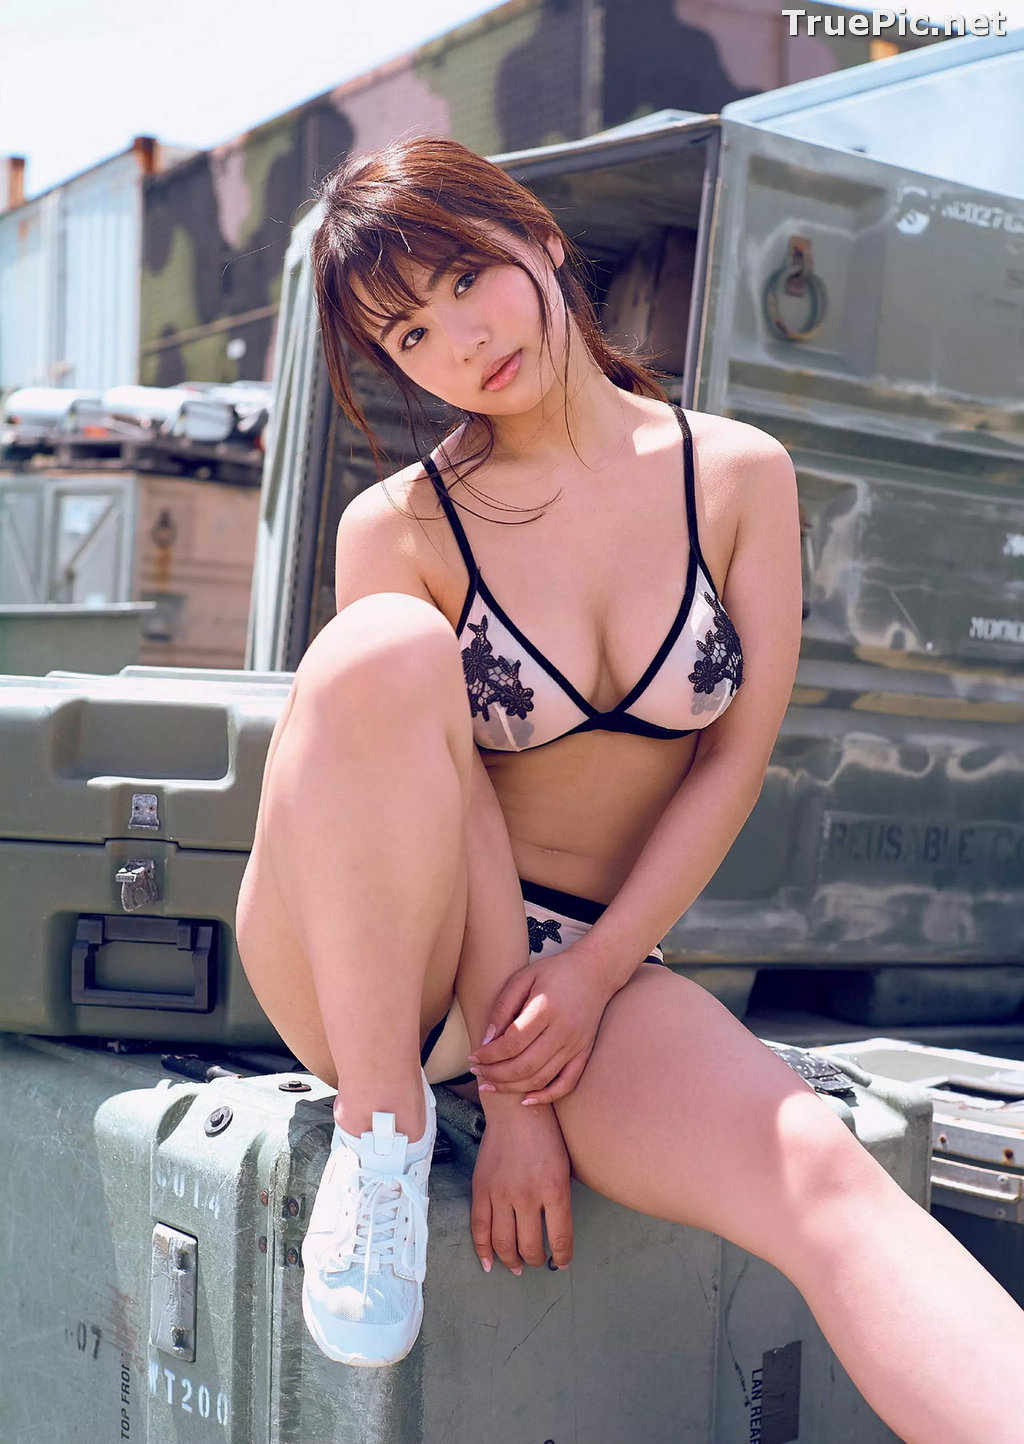 Image Japanese Actress And Model – Natsumi Hirajima (平嶋夏海) - Sexy Picture Collection 2021 - TruePic.net - Picture-5